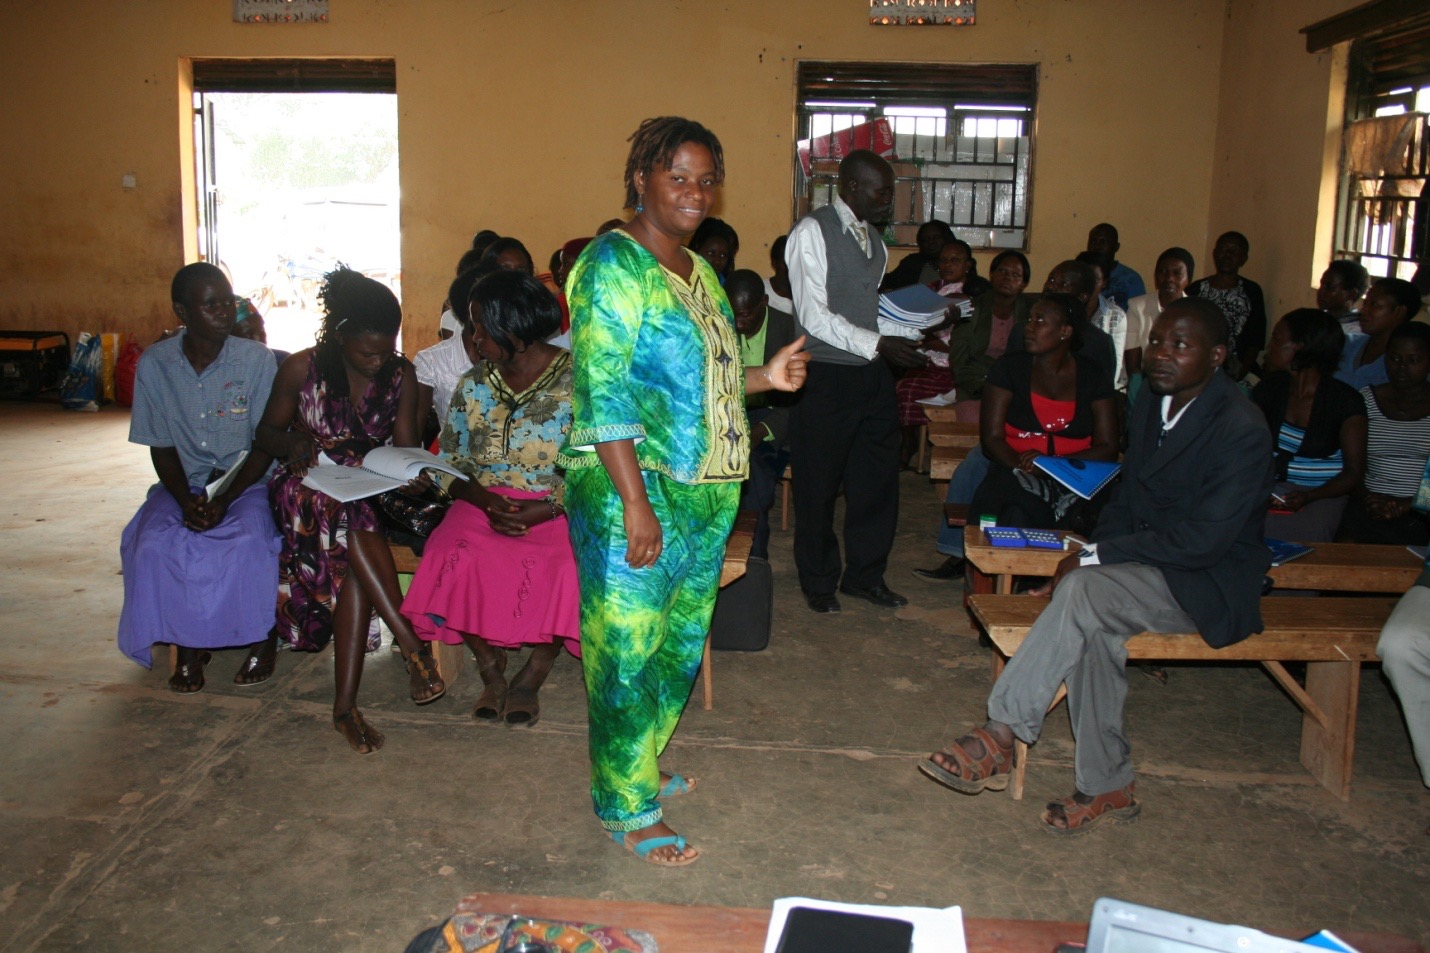 Michelle pictured center moved to Tanzania as a homeopathic teacher and mentor.